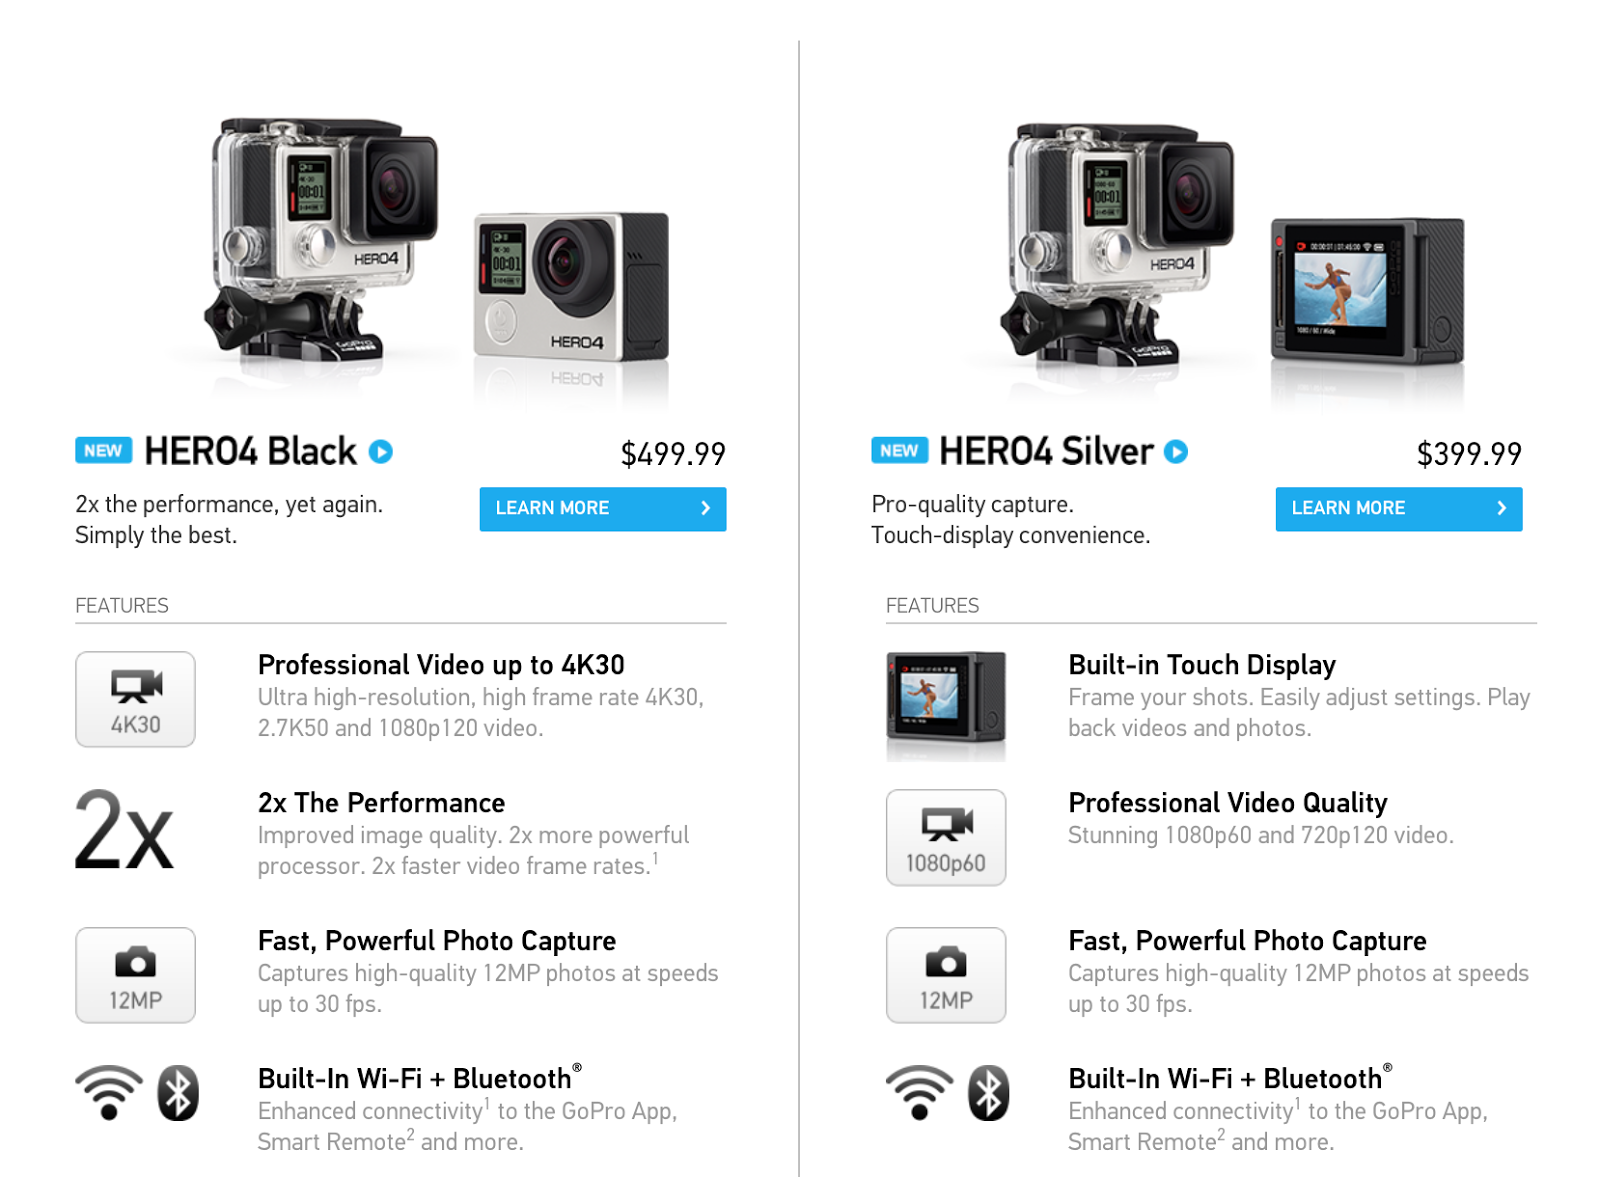 The GoPro Hero 4 Black And Silver So Now I Needed To Research Which One Of These Were Better For My Use At First Glance Not Much Looks